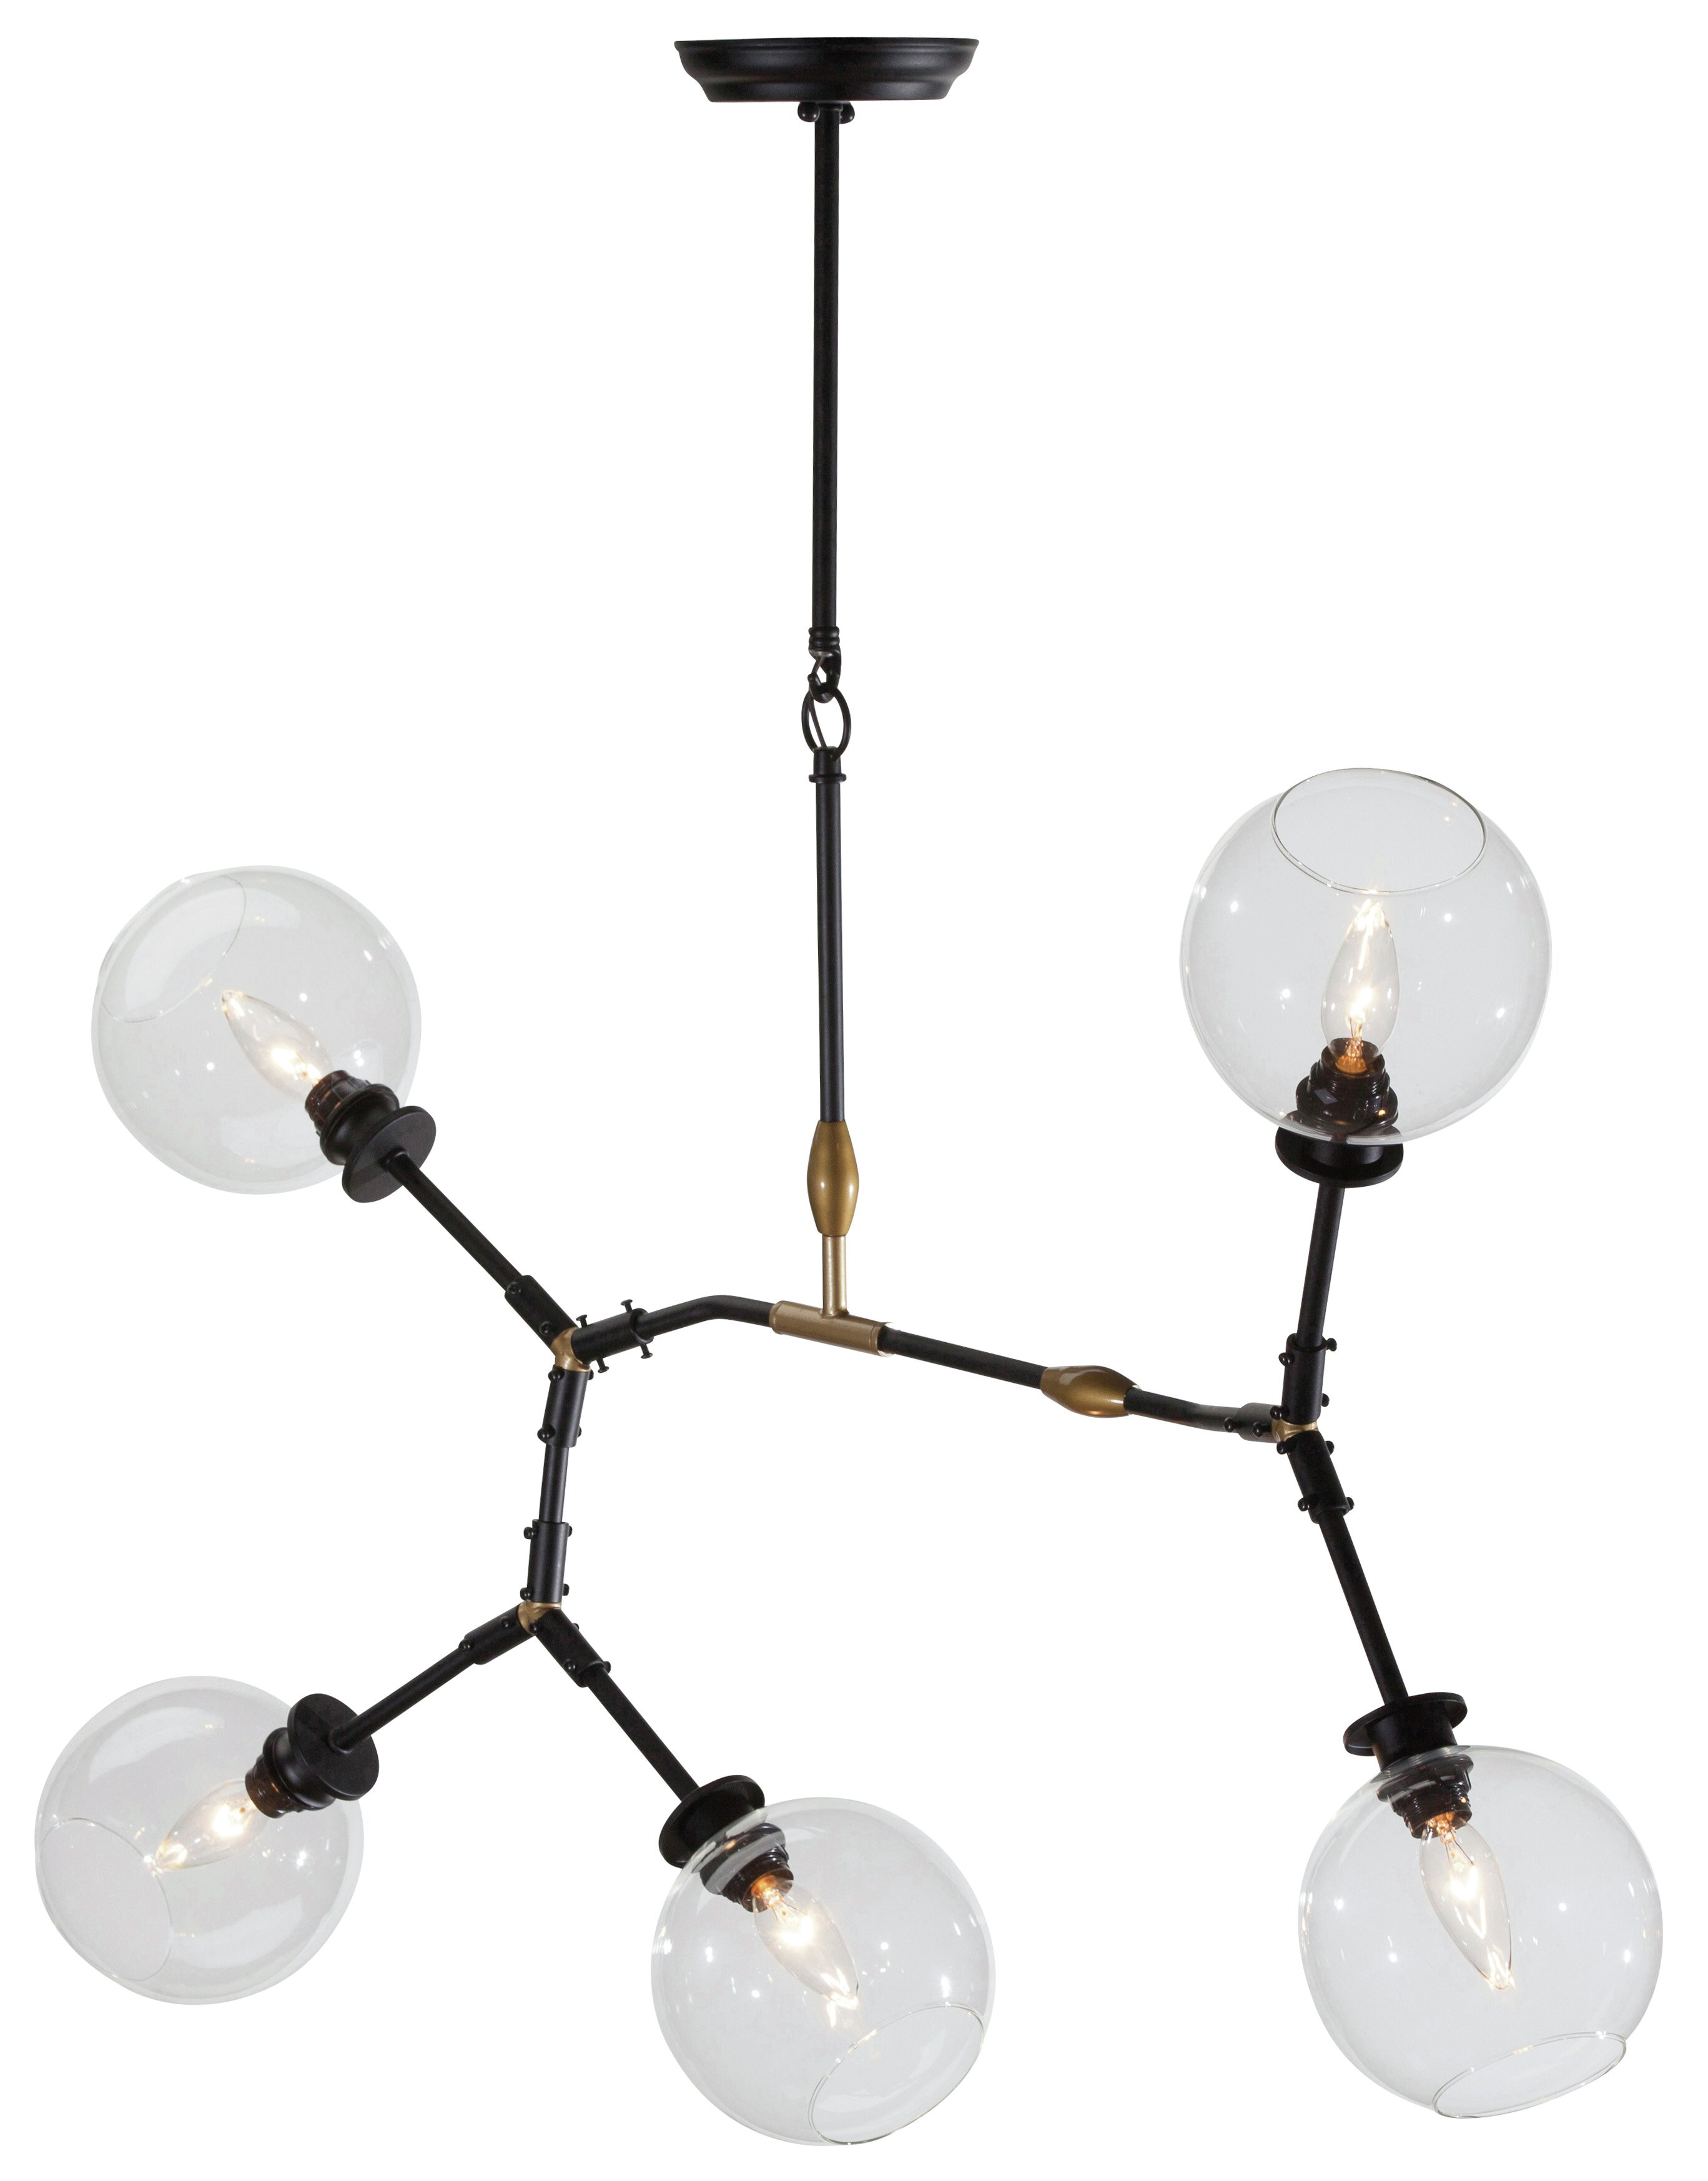 cluster overstock aged glass brass hudson valley product garden bronze light pendant rousseau free shipping metal home today